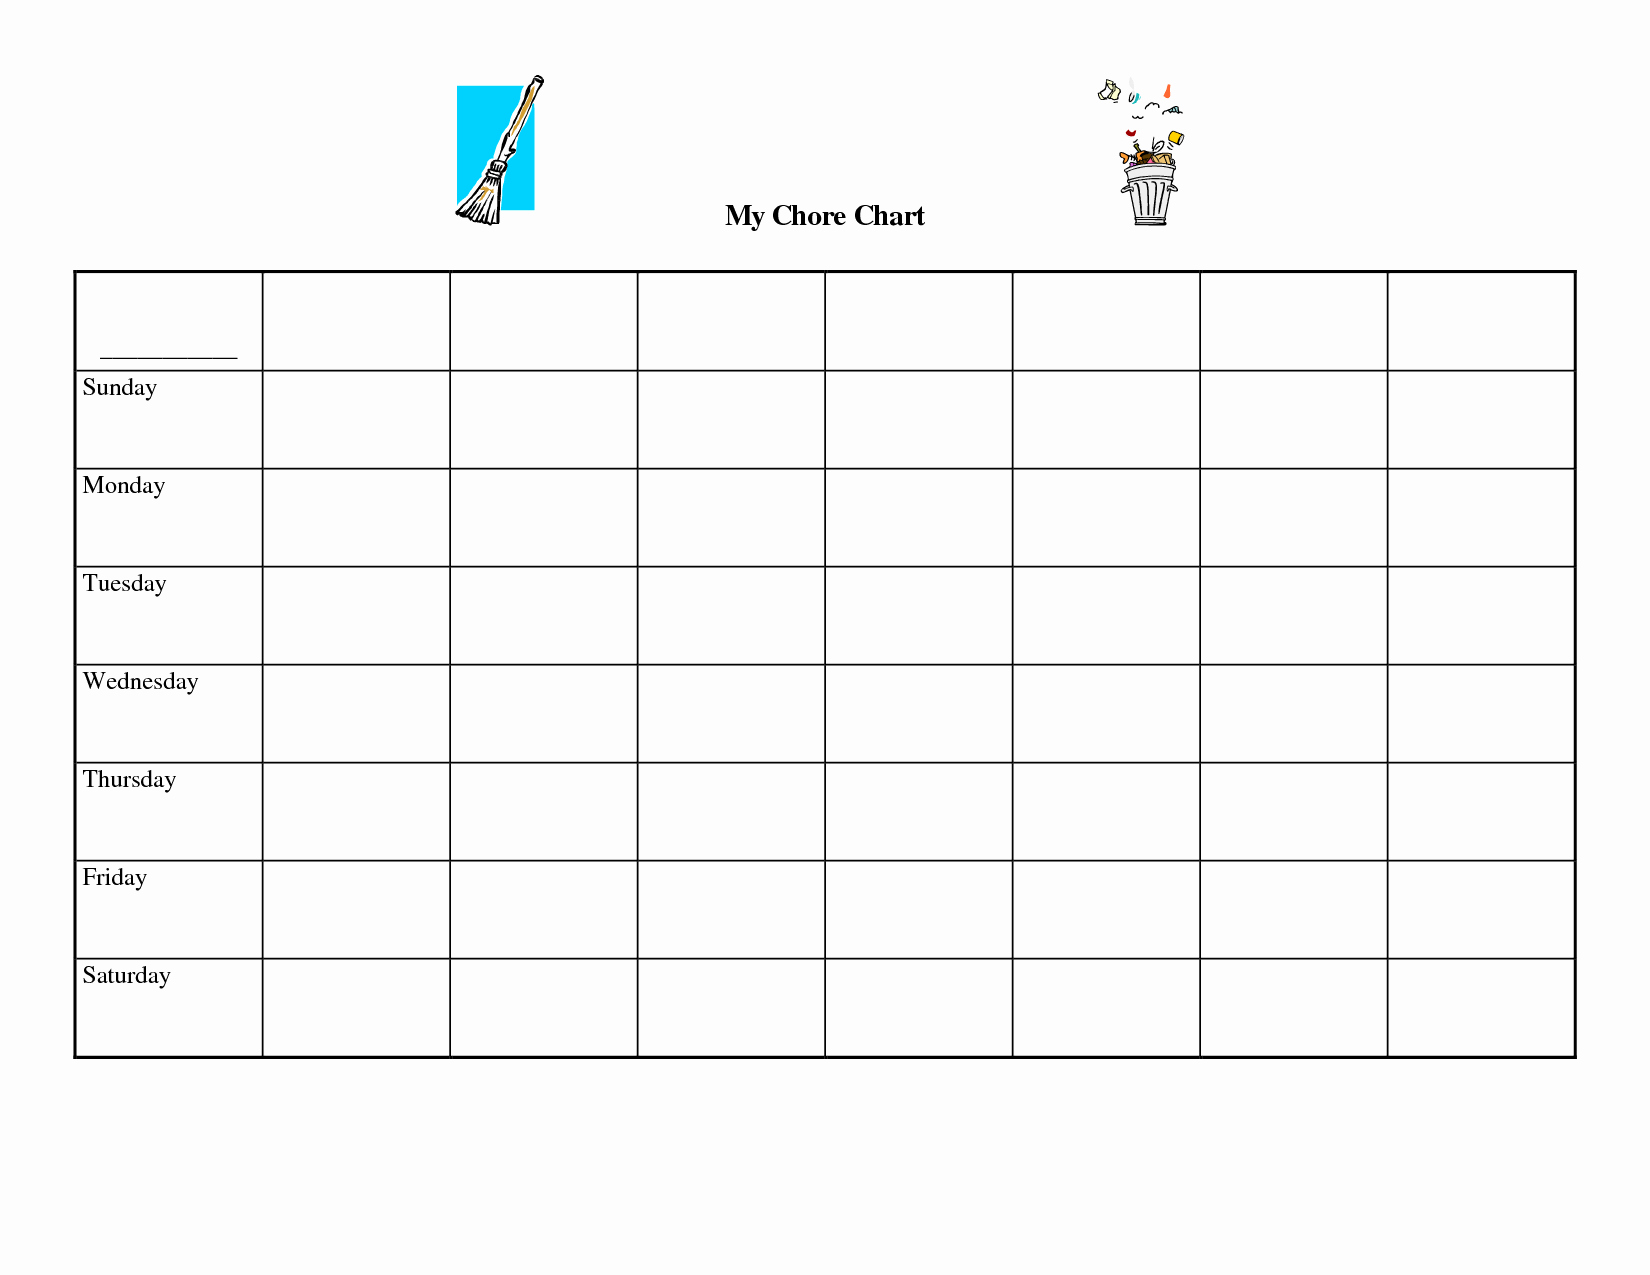 Free Chore Chart Template Awesome Chart Template Category Page 1 Efoza